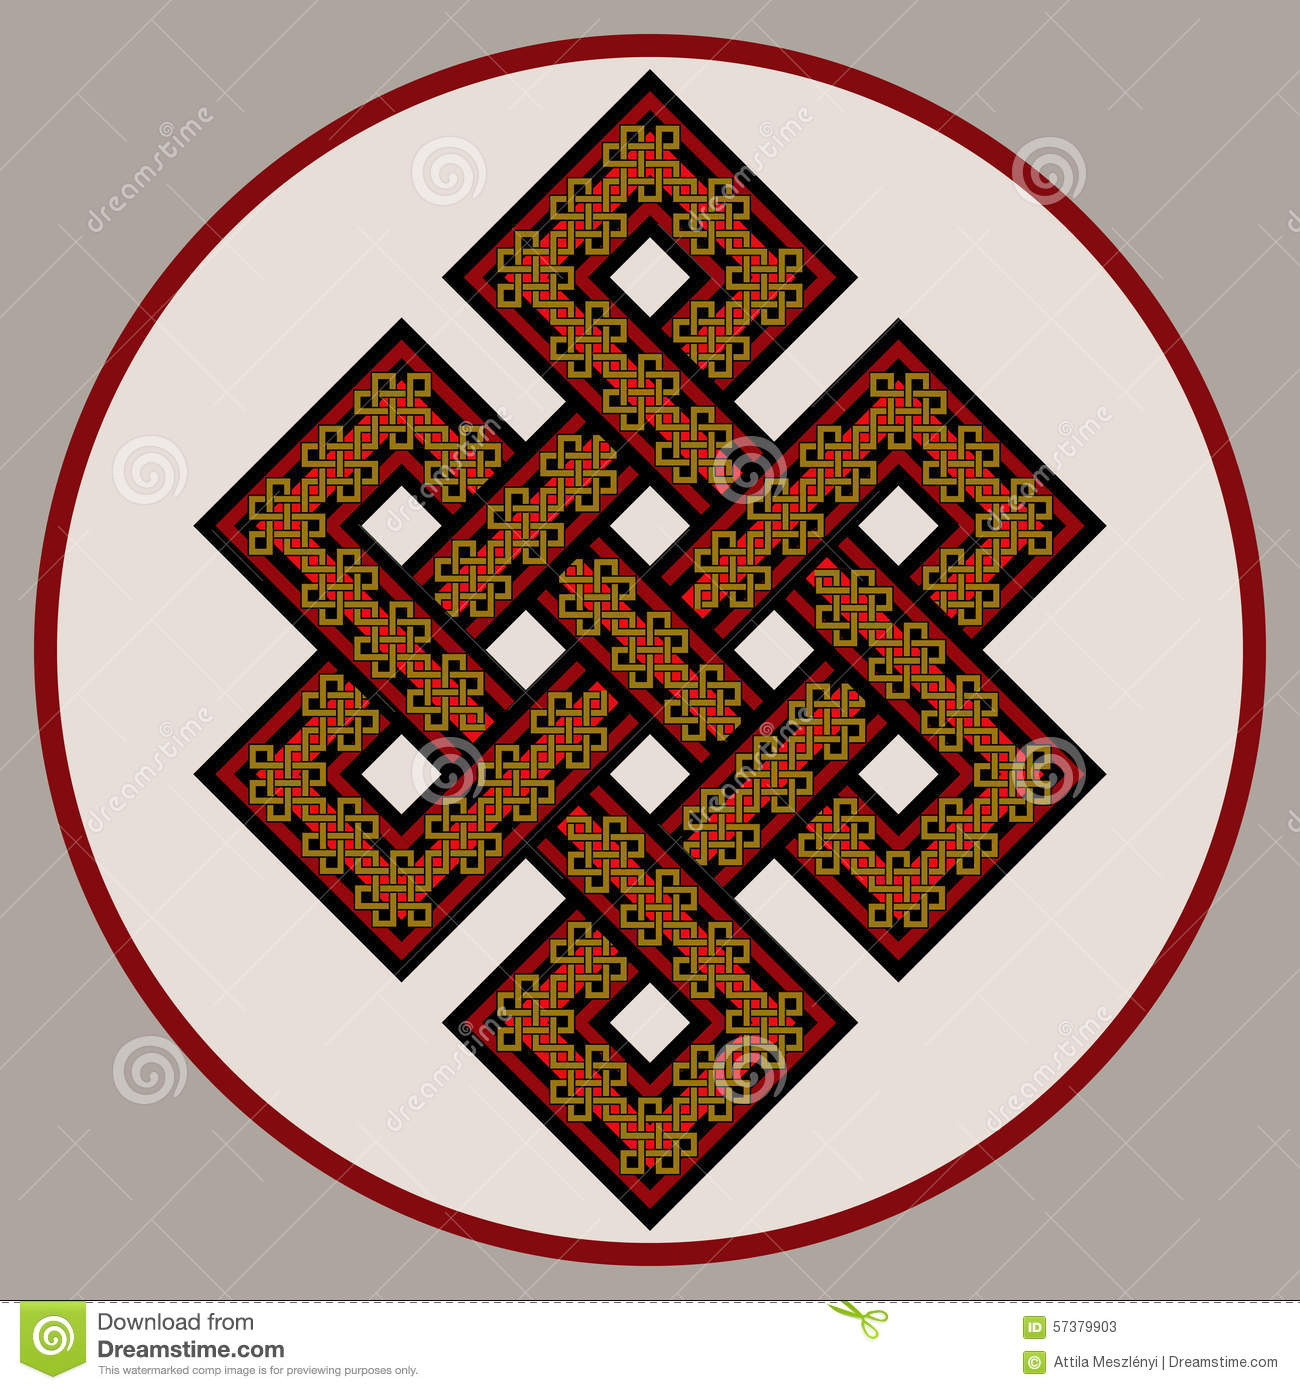 The Endless Knot Ornate Stock Vector Illustration Of Ancient